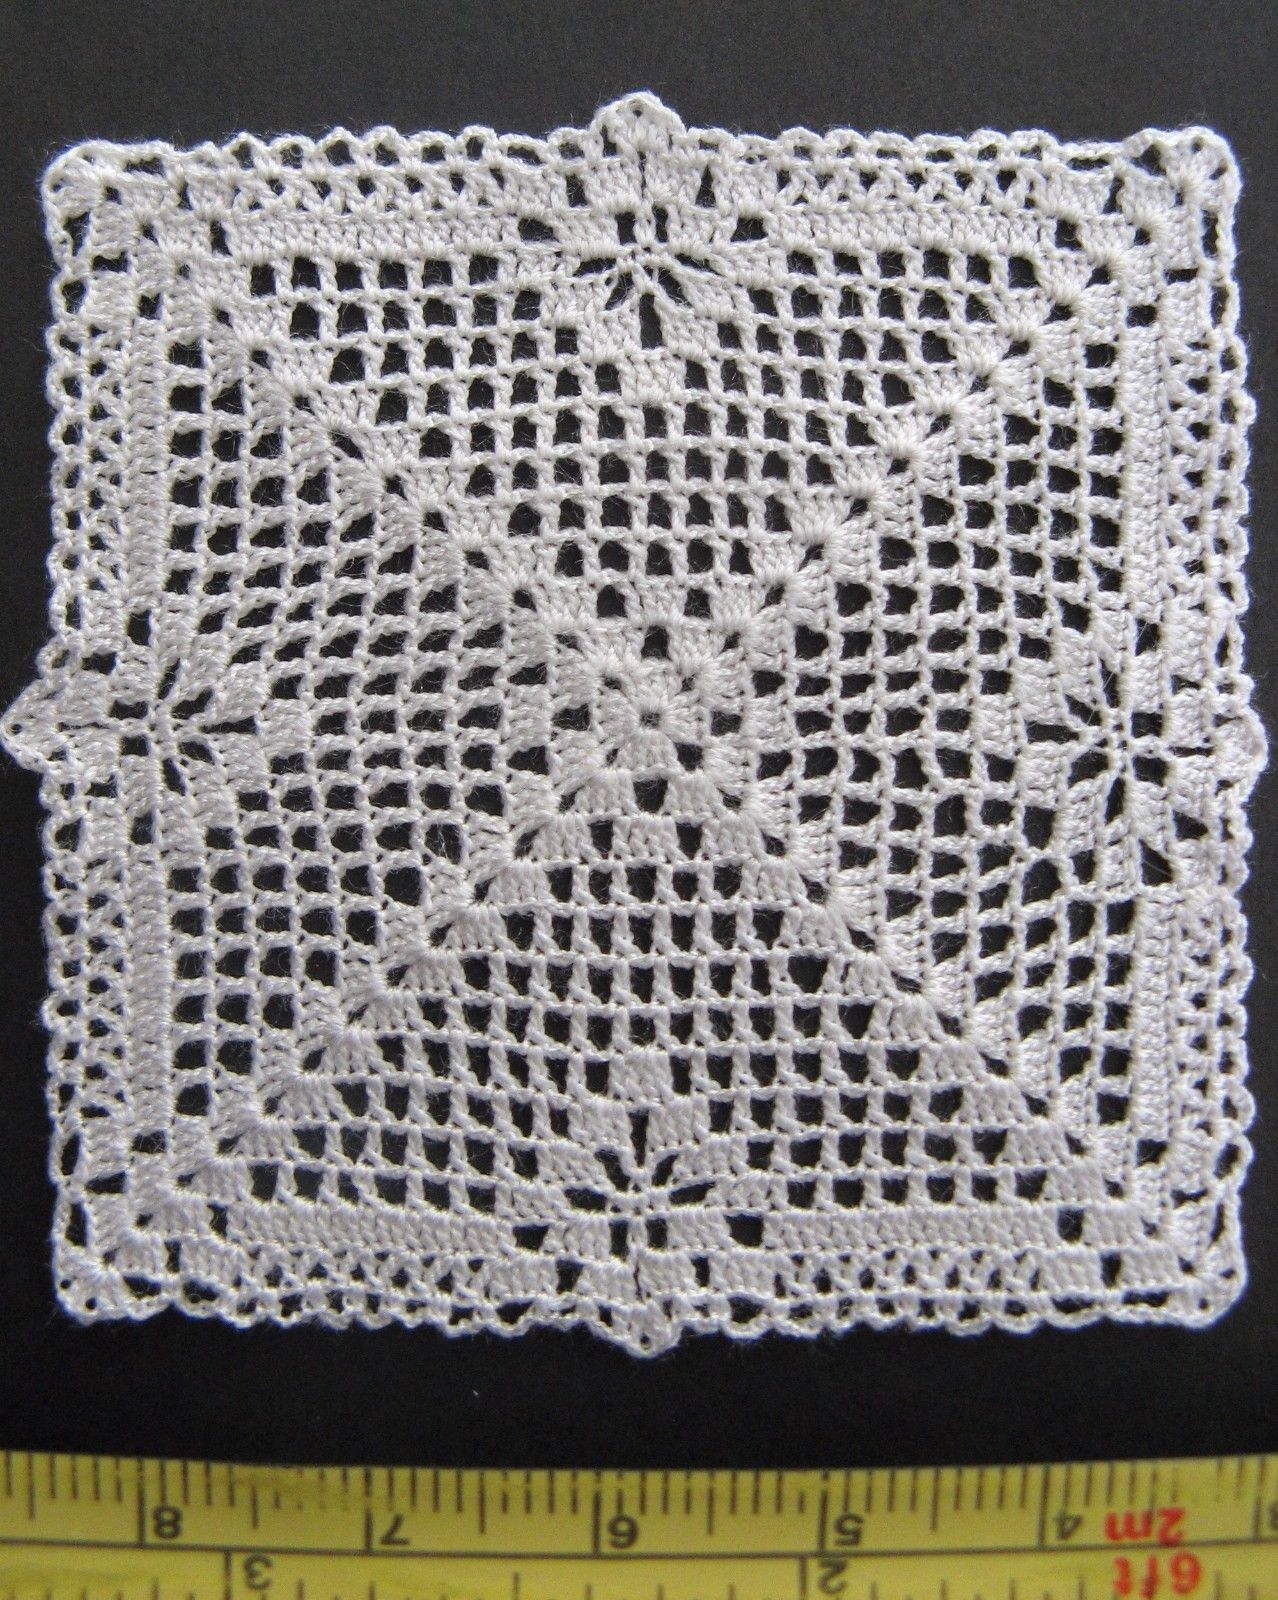 1000 images about crochet thread mini amp micro on pinterest - Dollhouse Miniature Small Square Silk Crochet Doily Table Cover Igma Artisan